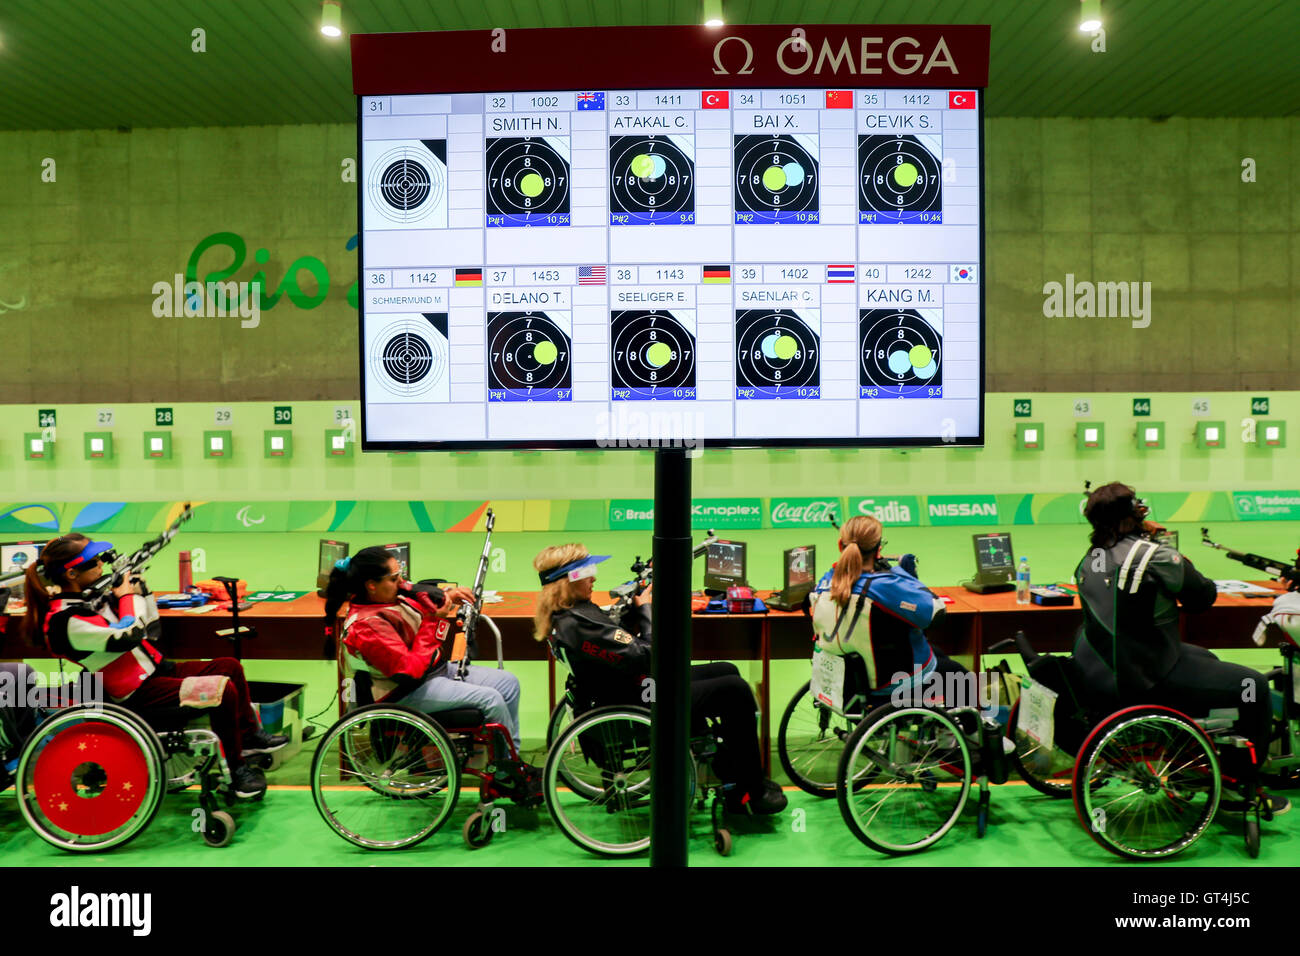 Rio De Janeiro, Brazil. 08th Sep, 2016. The scoreboard is seen during the Shooting R2 - Women's Qualification - Stock Image